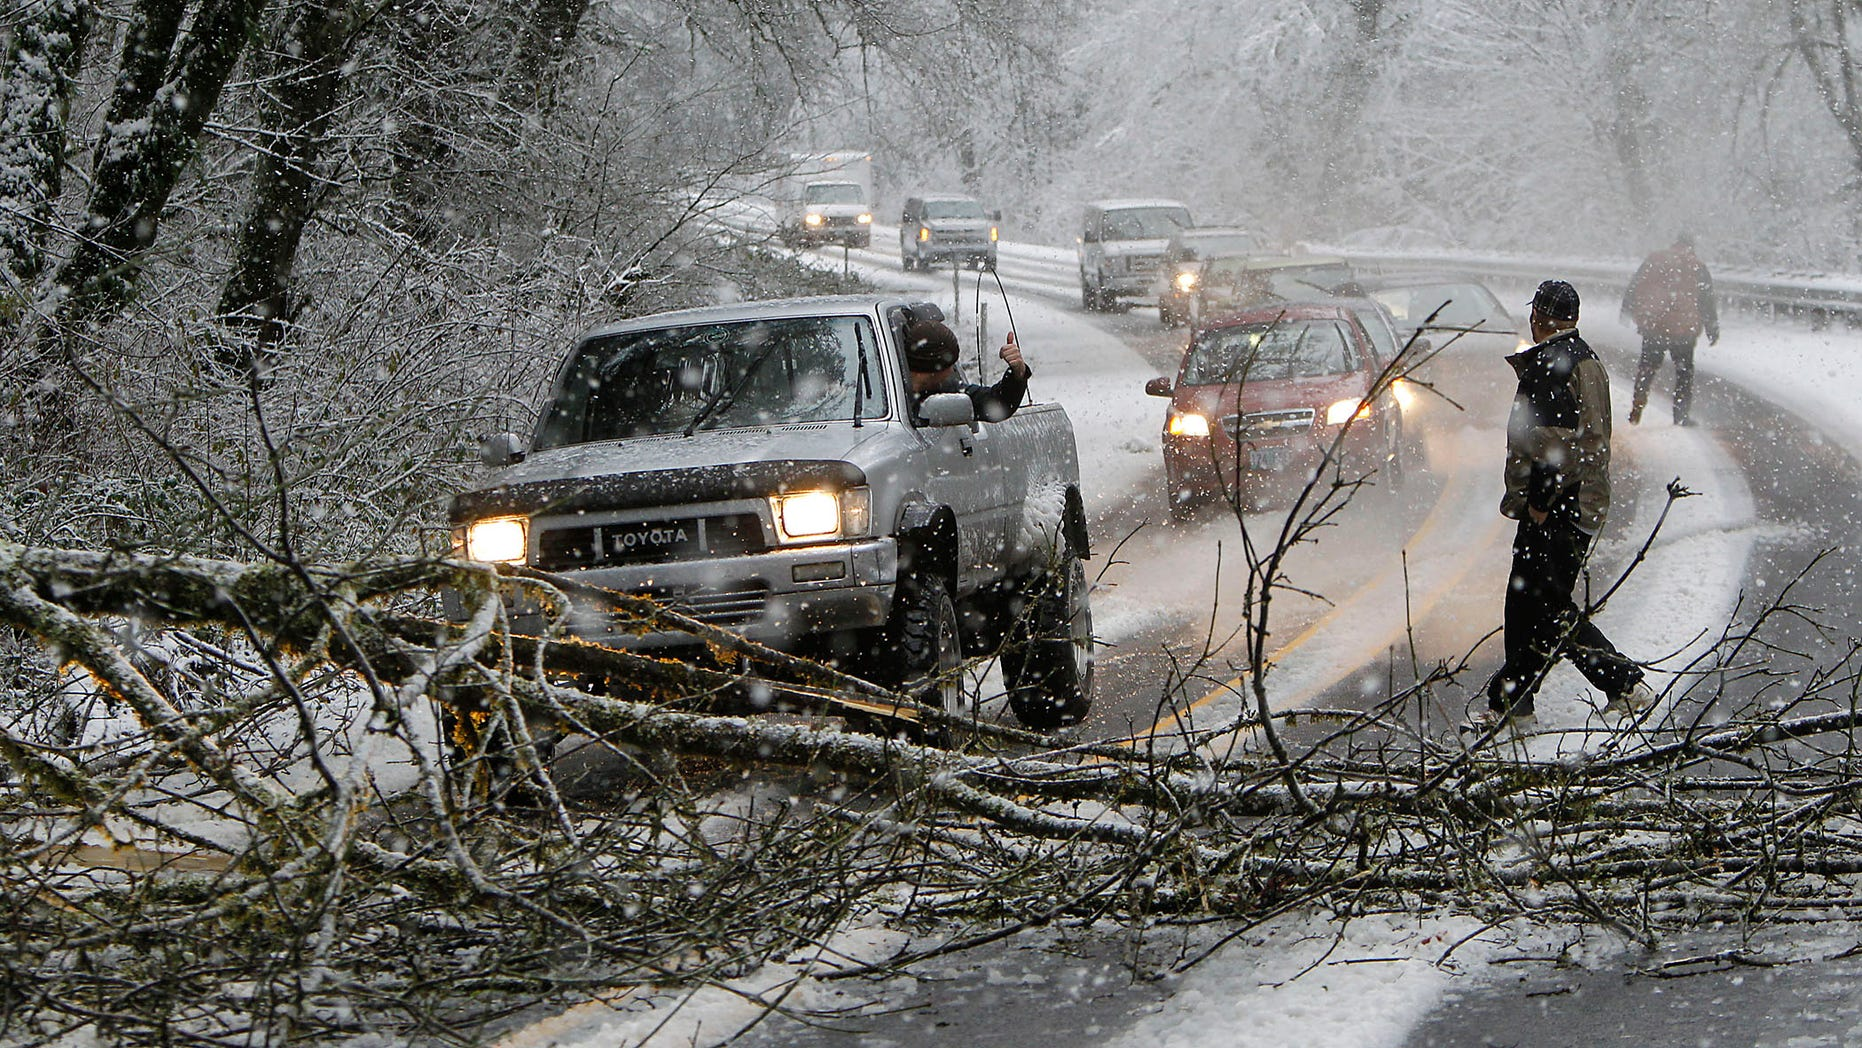 Dec. 20, 2012: A motorist in a pickup truck pulls a tree out of the way about five miles East of Mapleton, Ore. as heavy snow in the Oregon Coast Range caused trees to fall across Highway 126 Thursday morning.